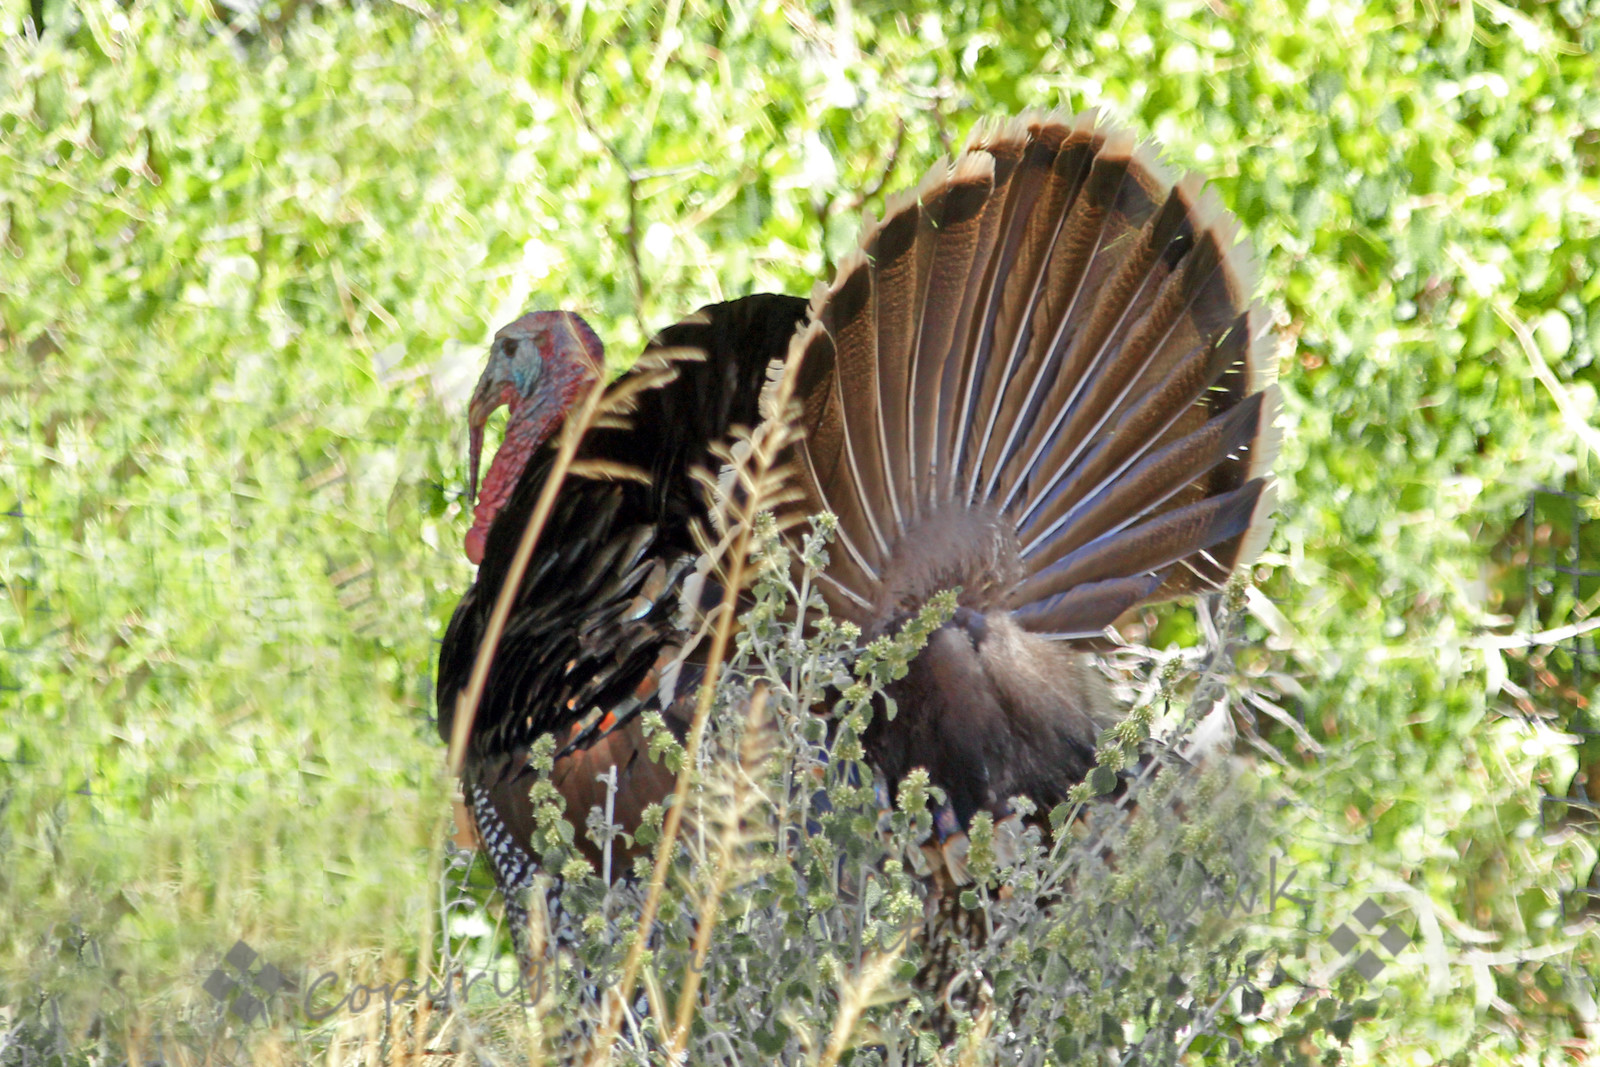 Wild Turkey ~ This male turkey was one of a large flock of wild turkeys that live in Madera Canyon, in the Santa Rita Mountains in southeastern Arizona.  About 20 of them roosted in a tall sycamore tree next to the cabin where I was staying; they made quite a commotion flying up into the tree for the night.